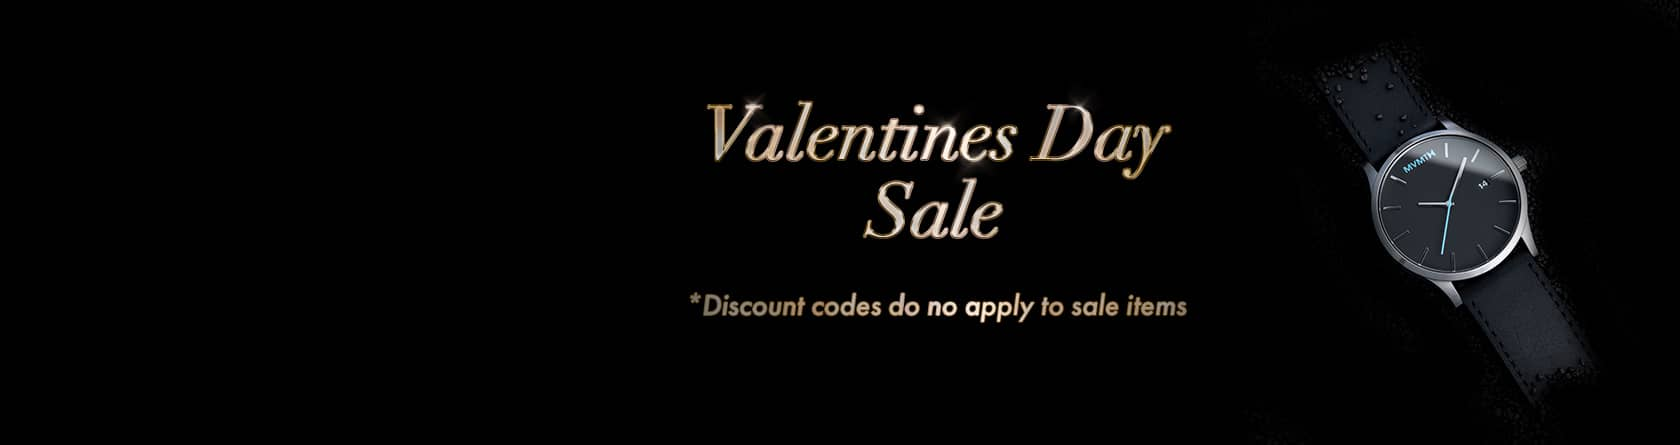 Valentine's Day Sale: discount codes do not apply to sale items